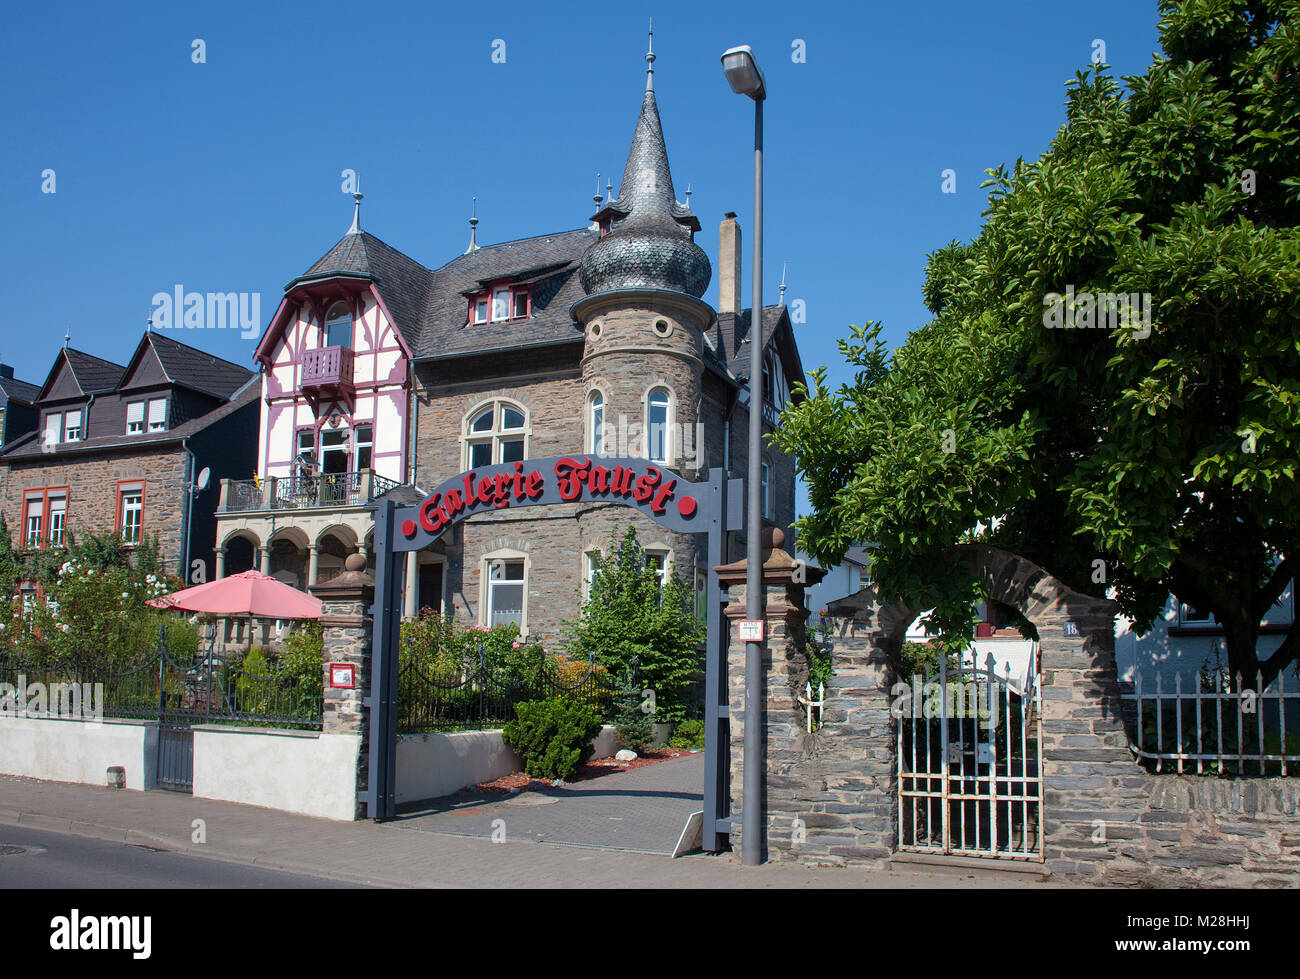 Gallery 'Faust' at a typical Moselle villa, wine village Bernkastel-Kues, Moselle river, Rhineland-Palatinate, - Stock Image